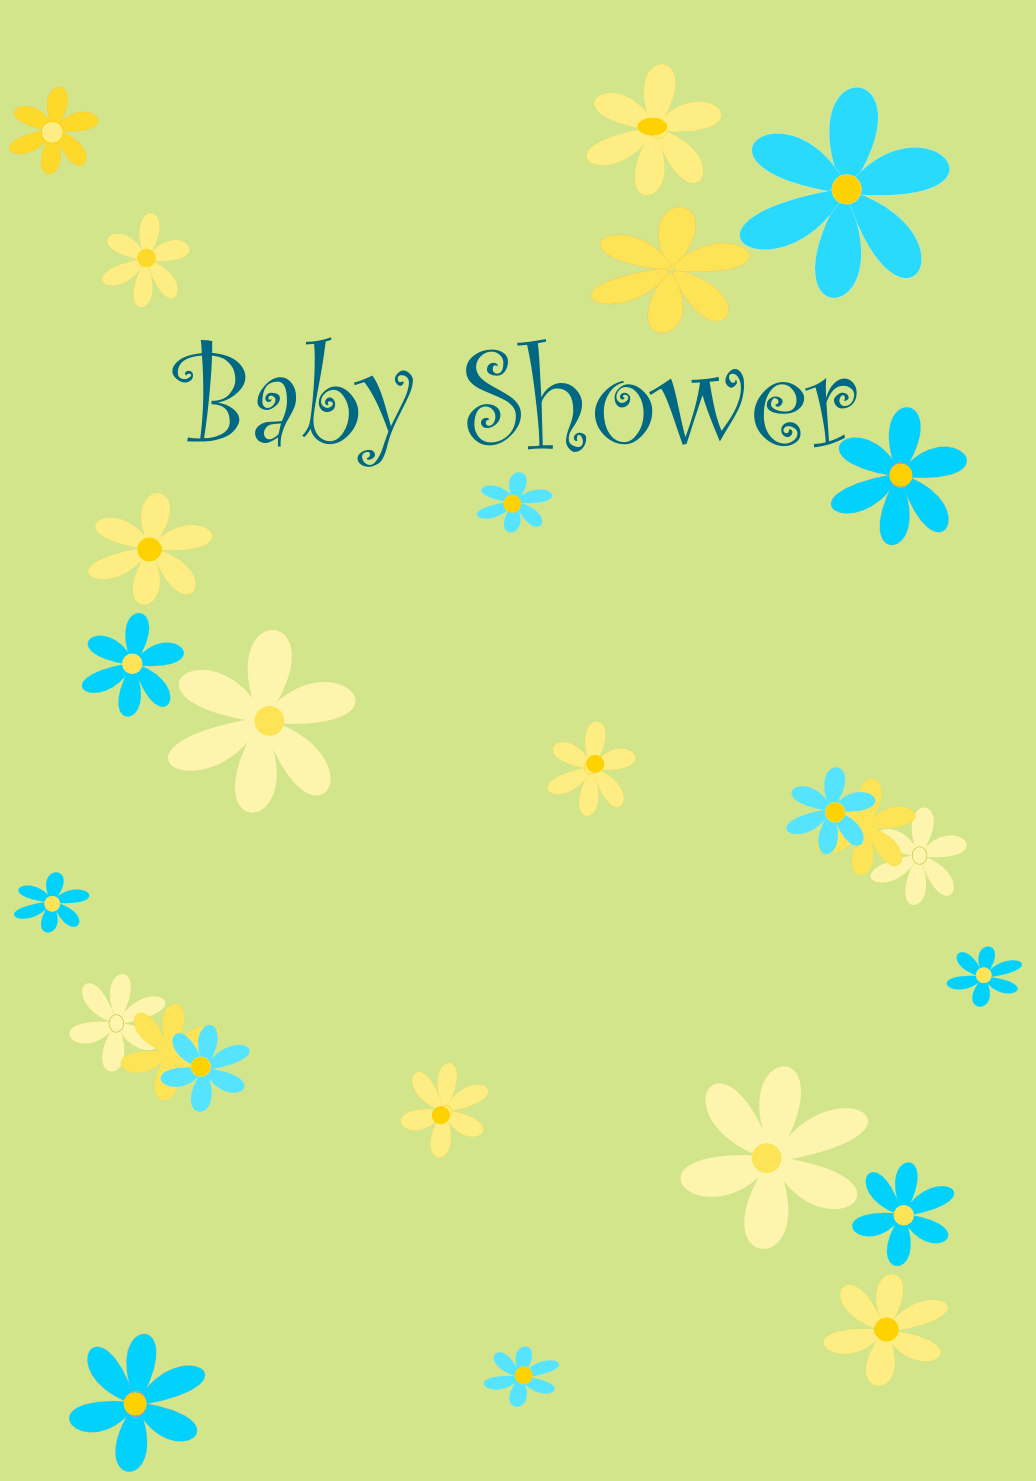 Free Printable Baby Shower Card Fresh Printable Birthday Cards Printable Baby Shower Cards